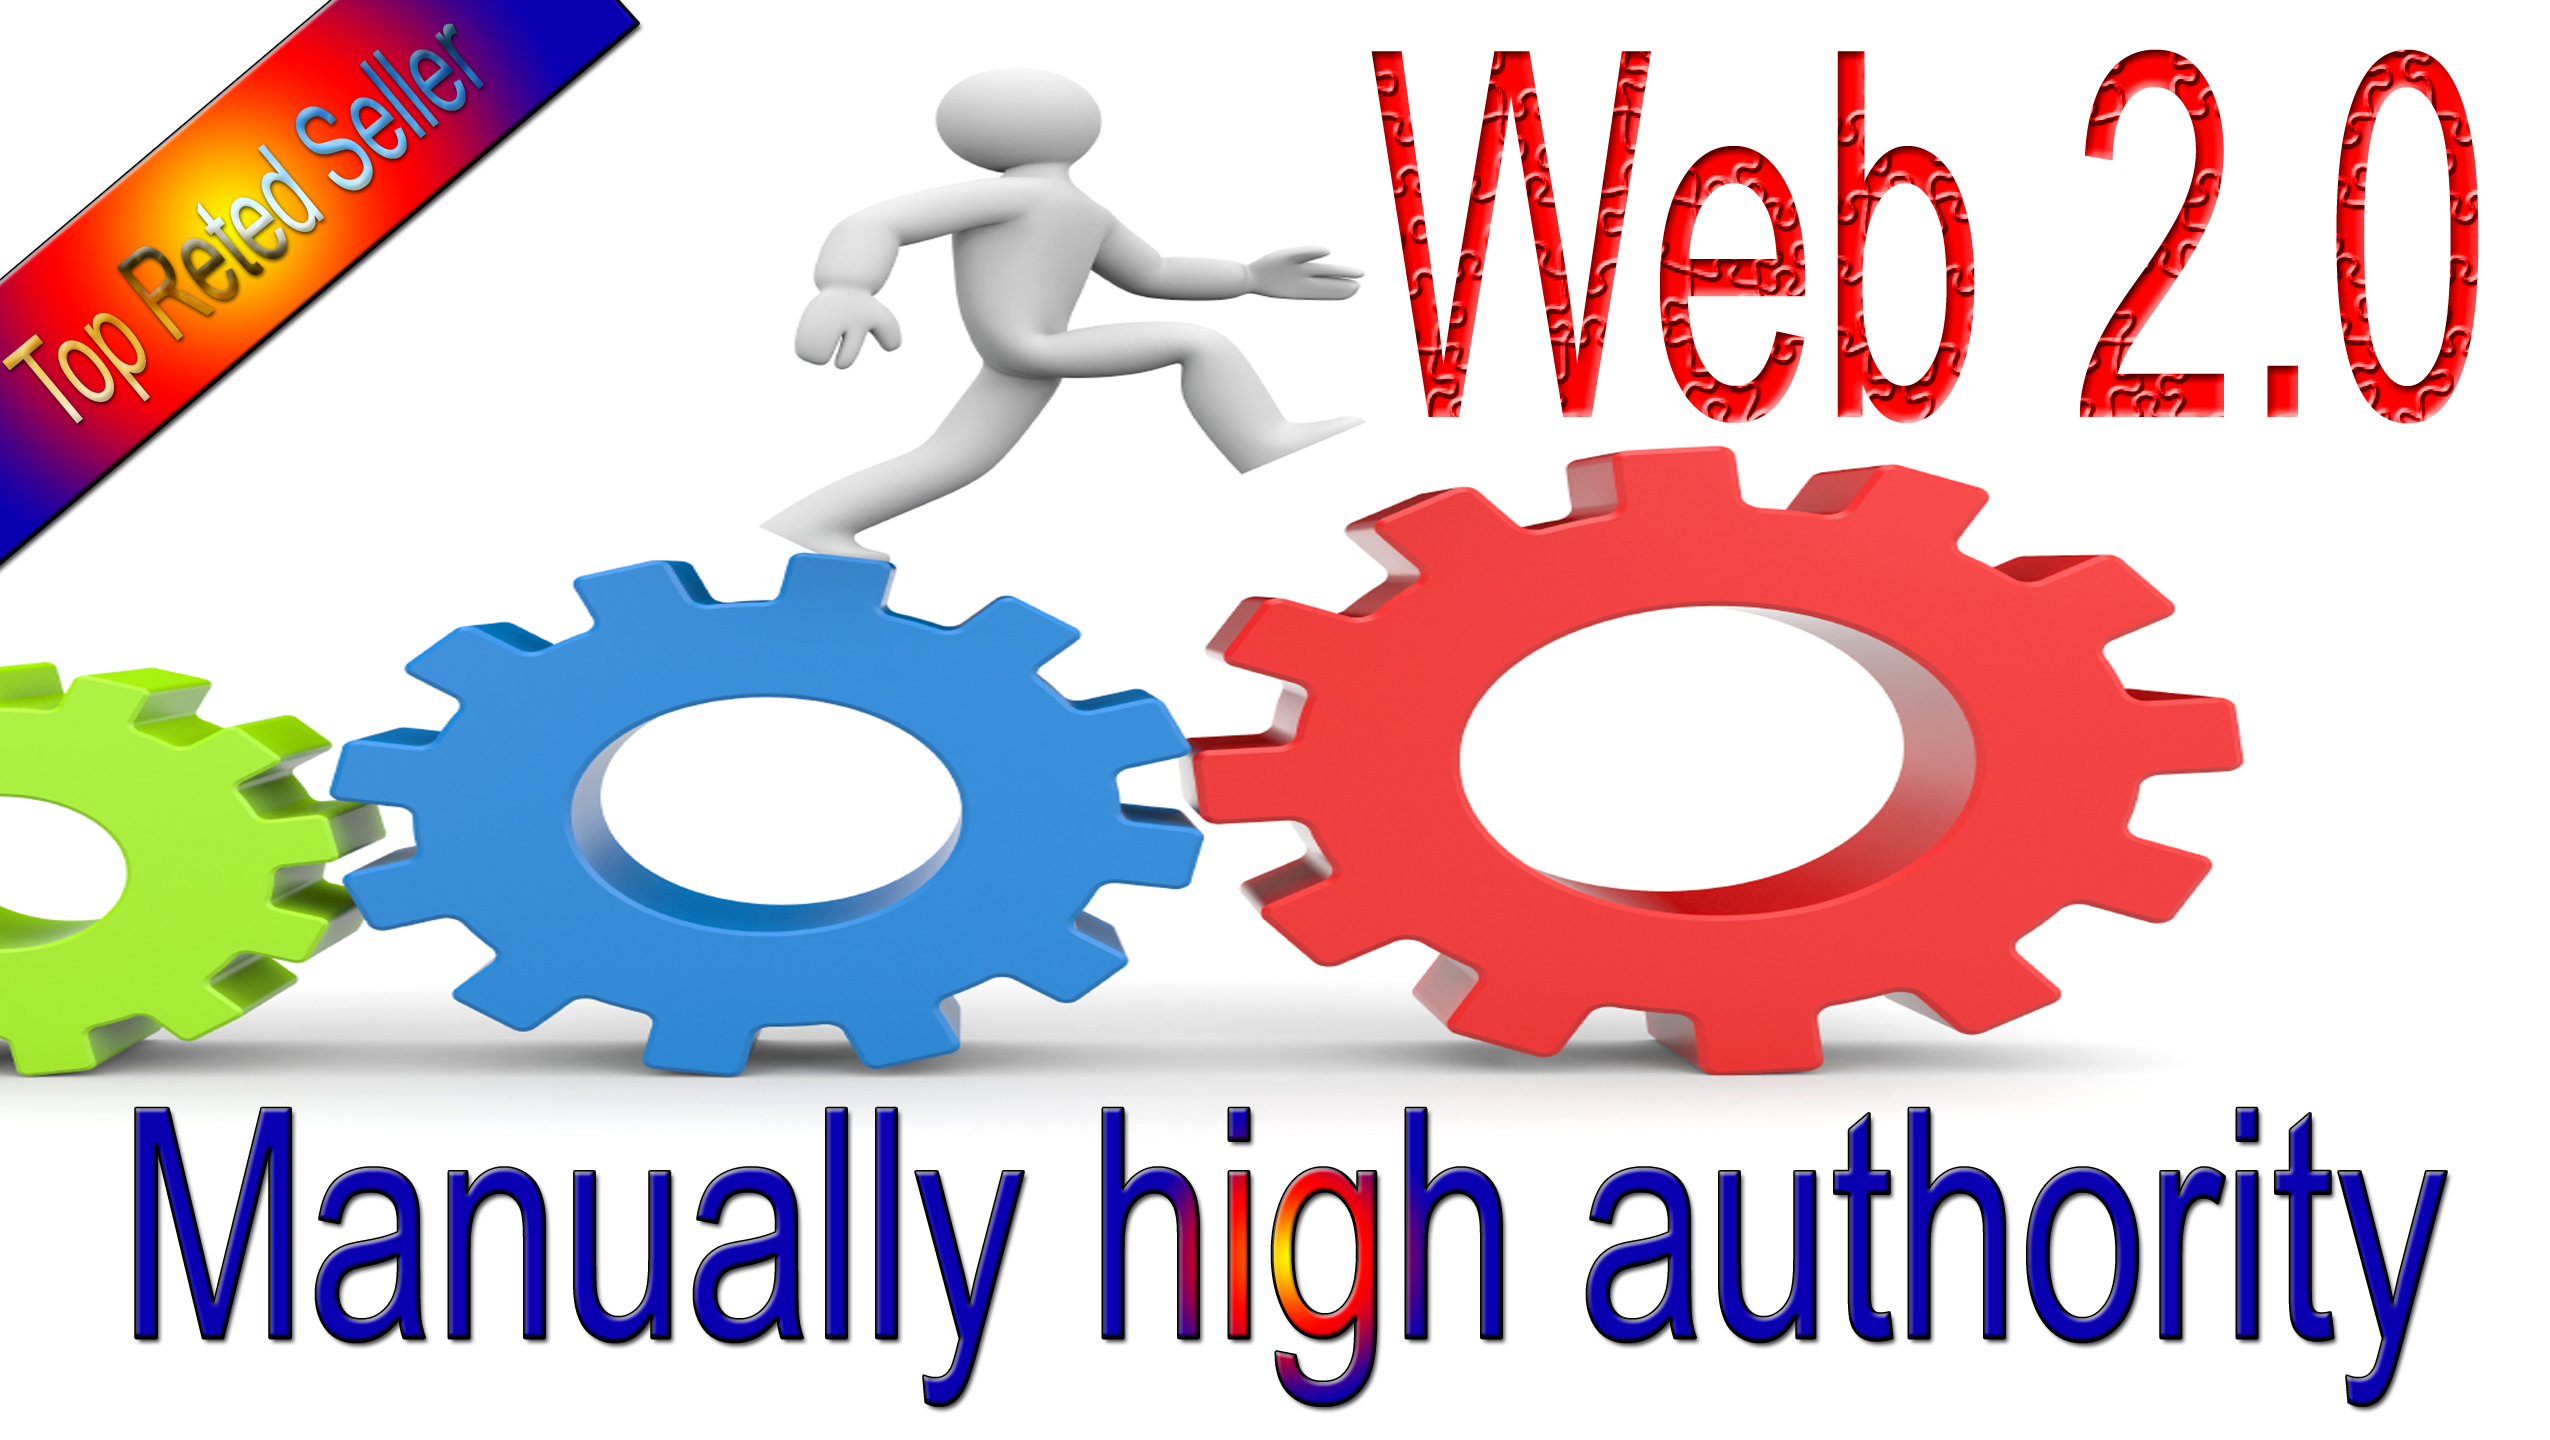 Get rank with 30 manually high authority web 2.0 backlinks